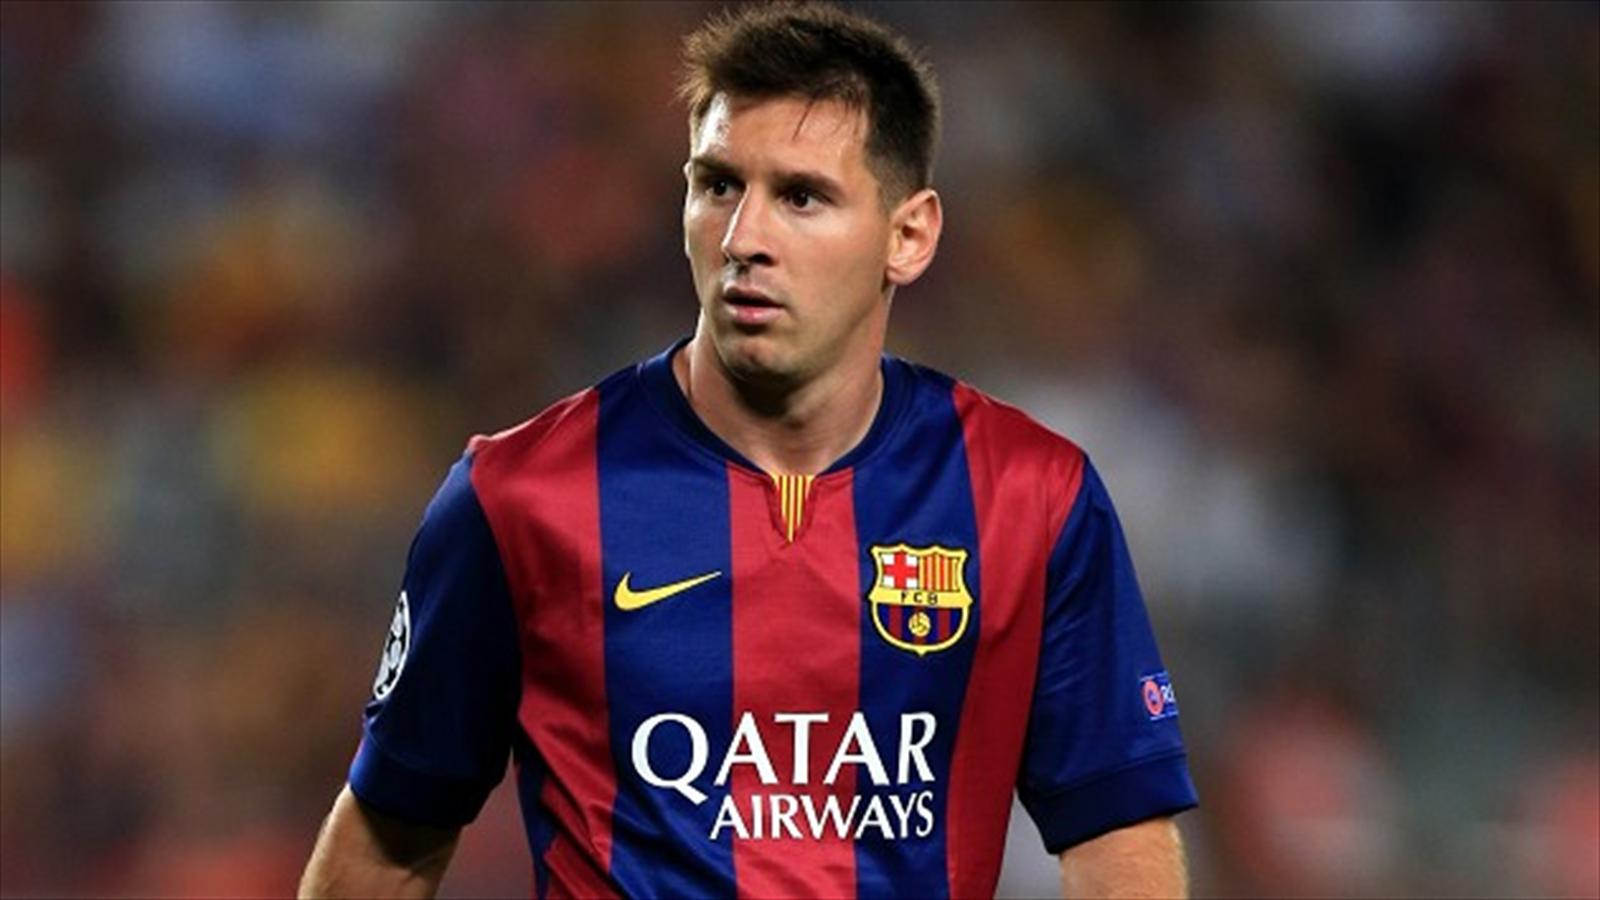 ... lionel_messi_barcelona_2014_15_wallpaper_by_jeffery10-d7loo2j lionel_messi_wallpaper lionel_messi_wallpaper_by_tcepel-d7m2fpg Lionel-Messi-2015 ...